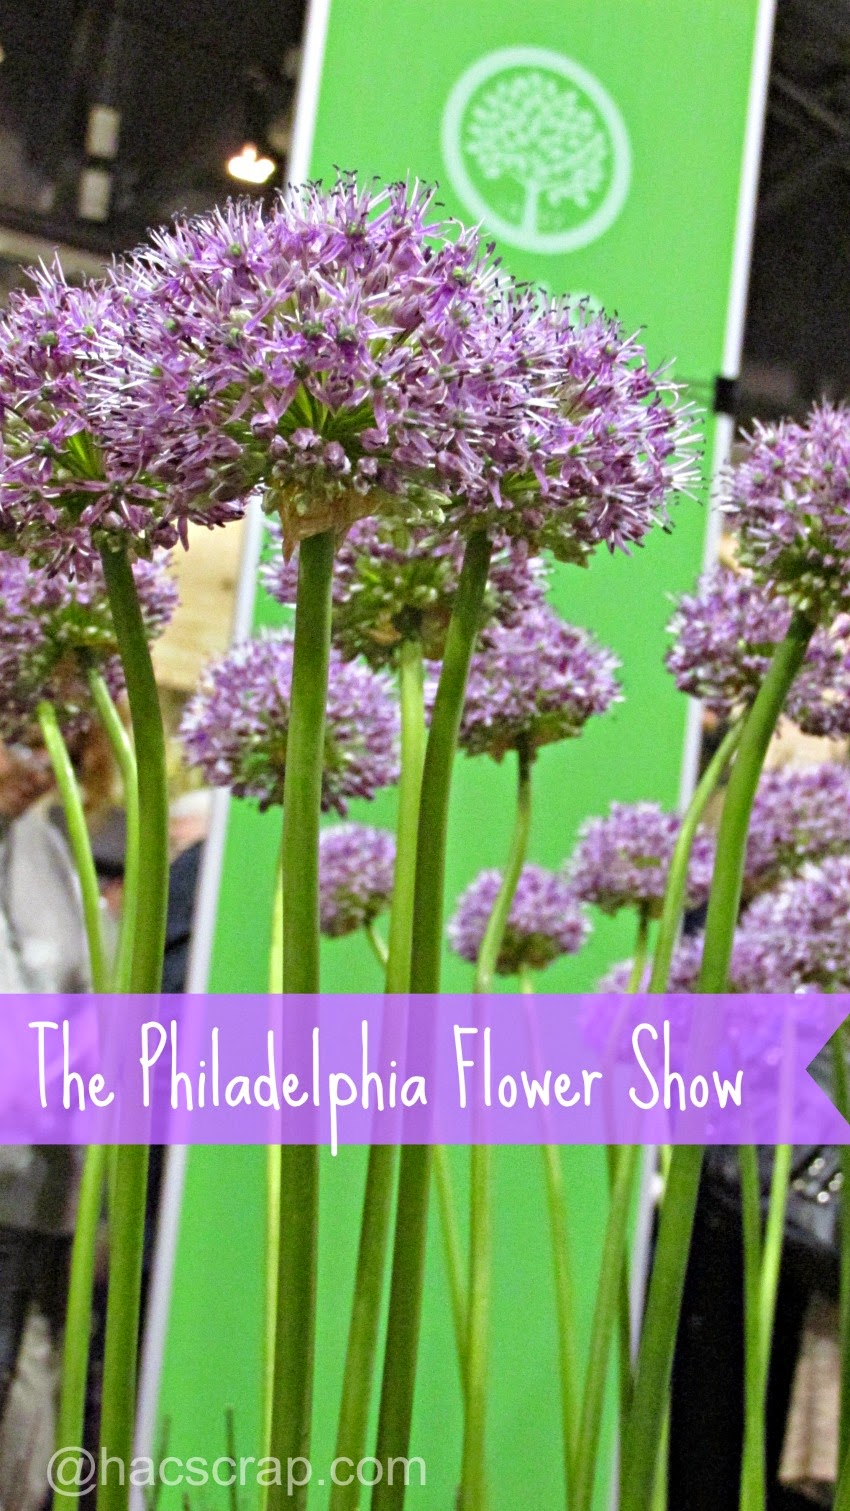 Visiting the 2015 Philadelphia Flower Show